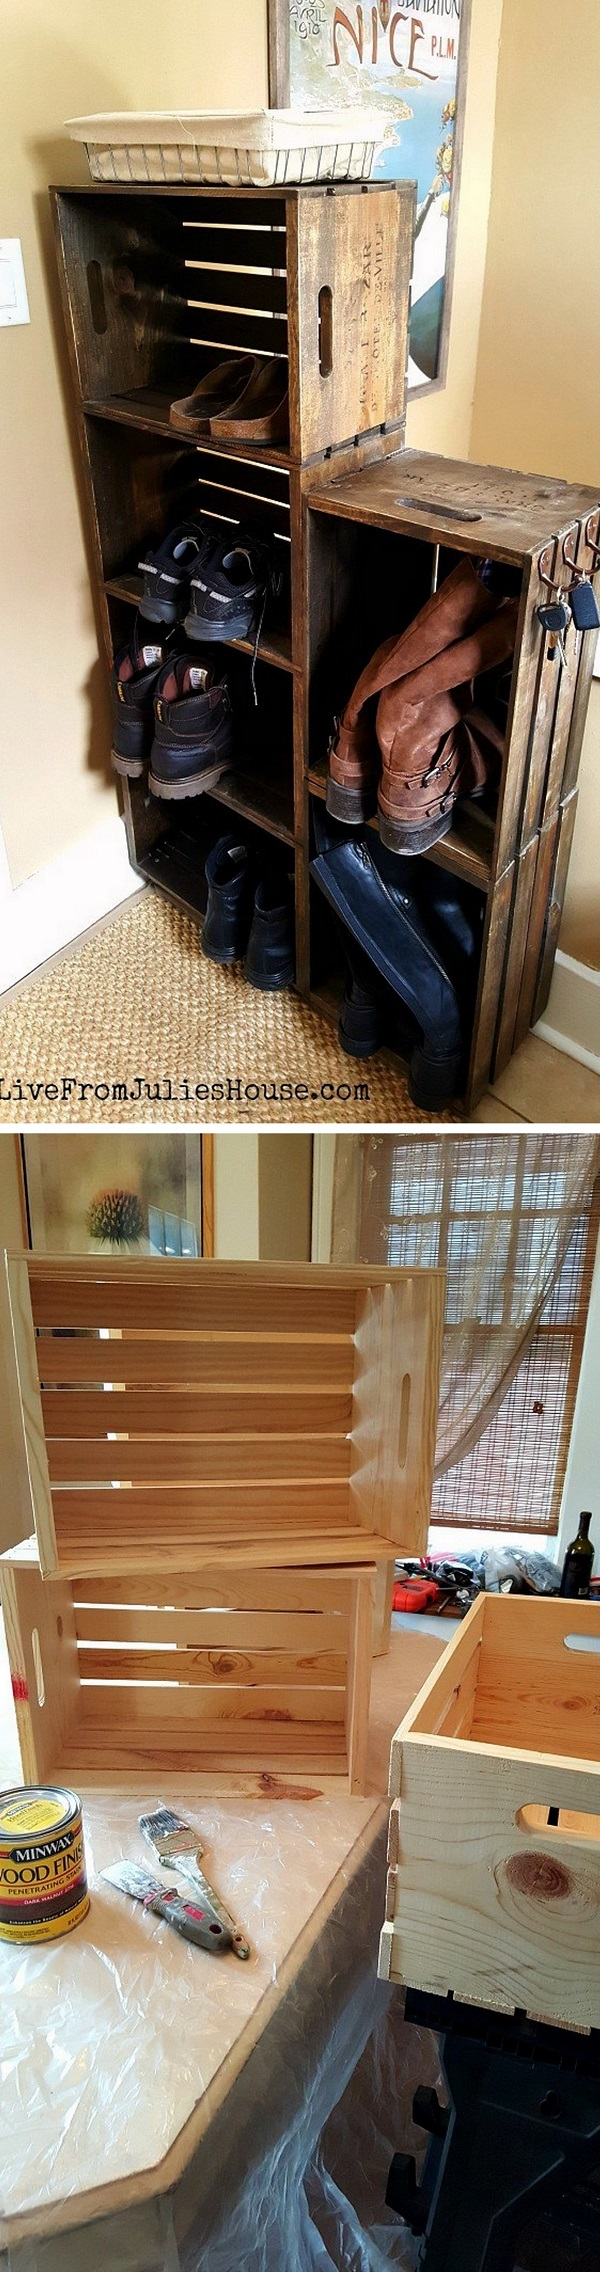 60+ Easy DIY Shoe Rack Ideas You Can Build on a Budget - Check out how to build an easy rustic DIY wooden crate shoe rack